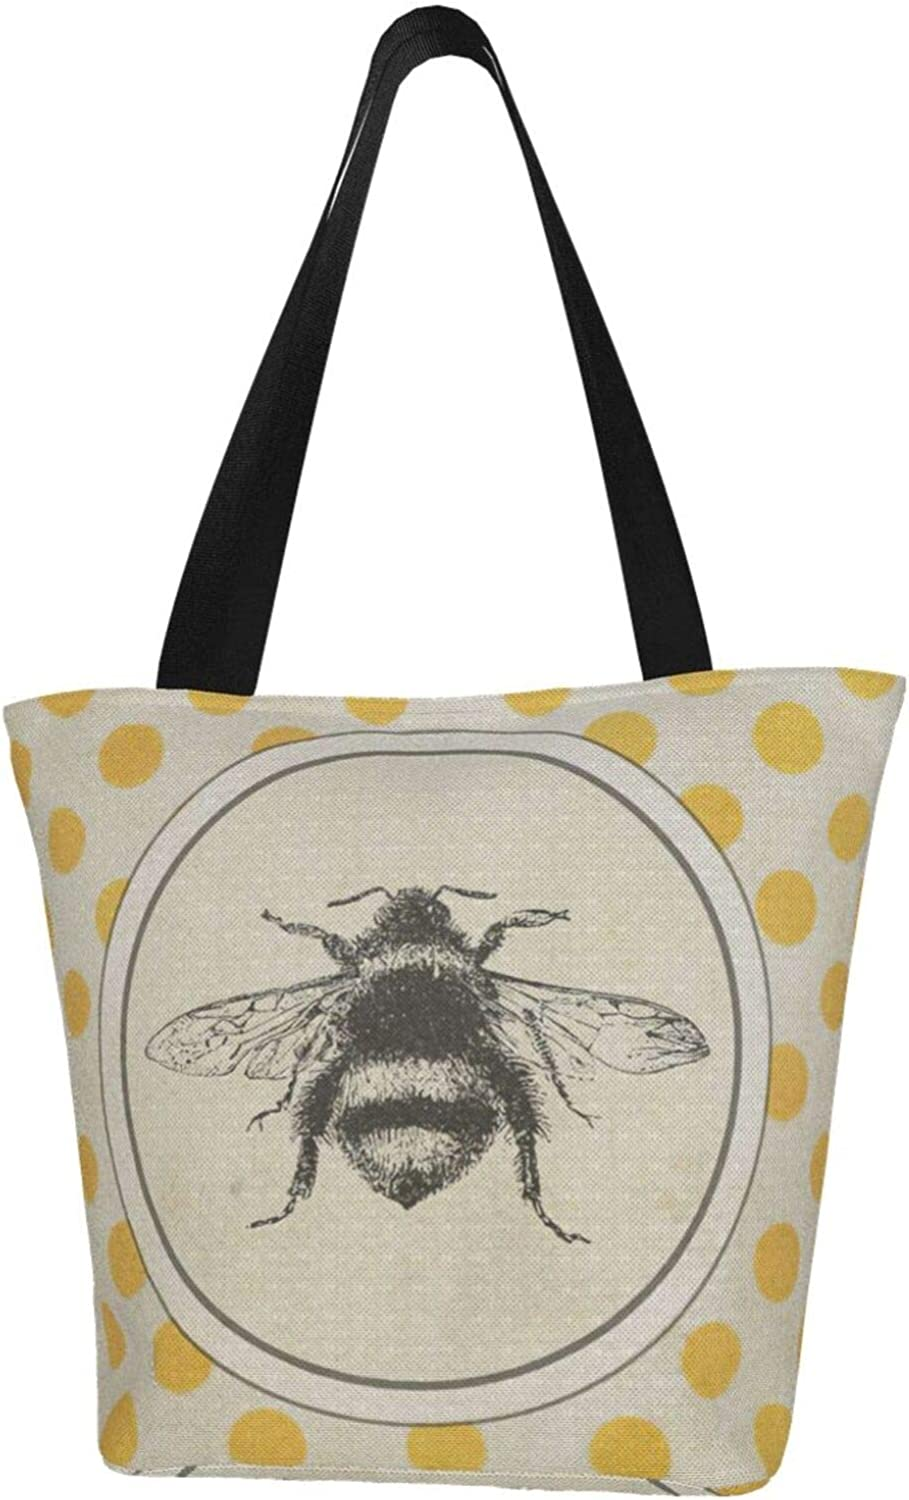 Yellow Spot Bee Insect Vintage Themed Printed Women Canvas Handbag Zipper Shoulder Bag Work Booksbag Tote Purse Leisure Hobo Bag For Shopping